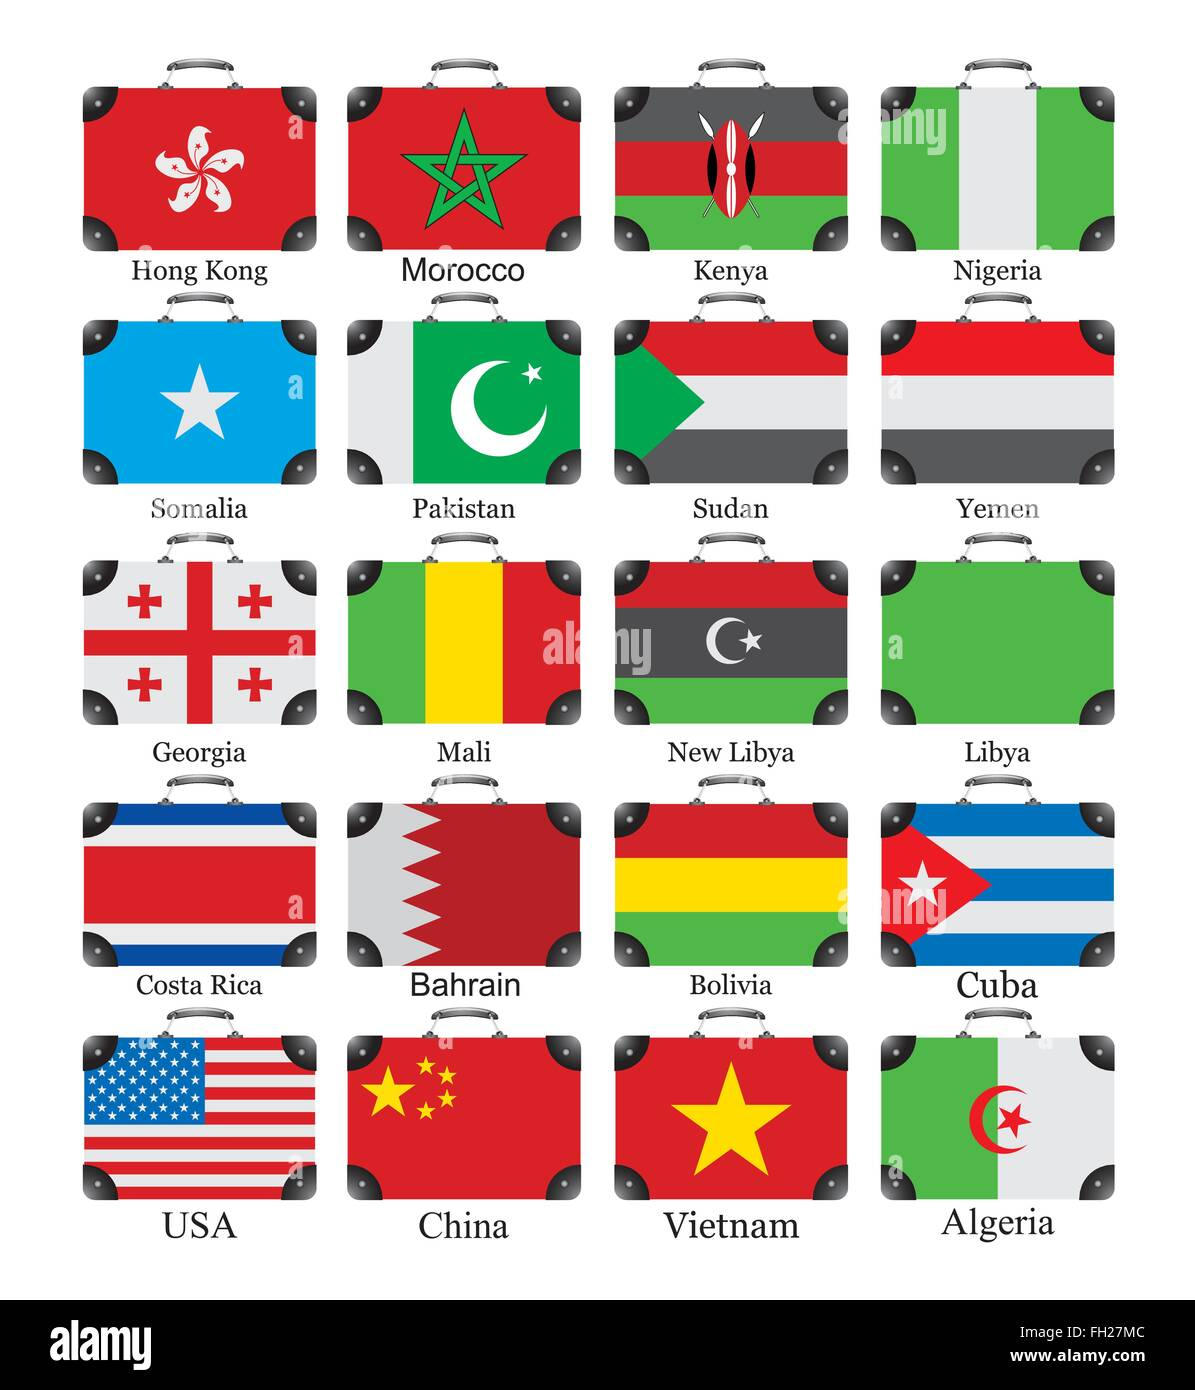 Flags of the world on bags - Stock Image